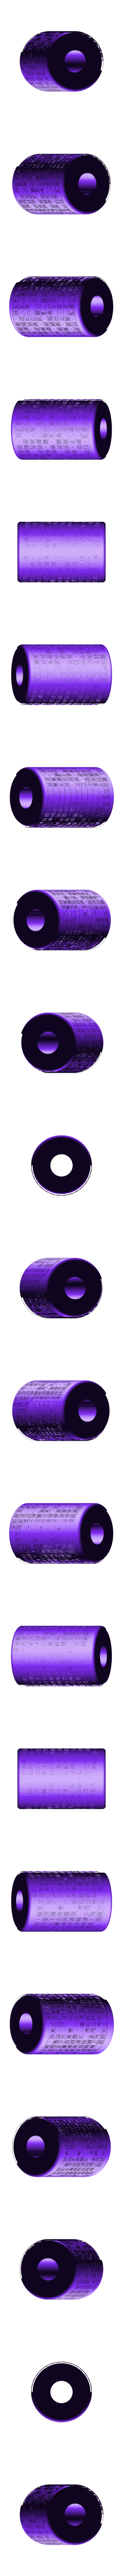 The_Heart_Sutra_cylinder.stl Download free STL file Prayer wheel (With frame) • 3D printing template, NickChung